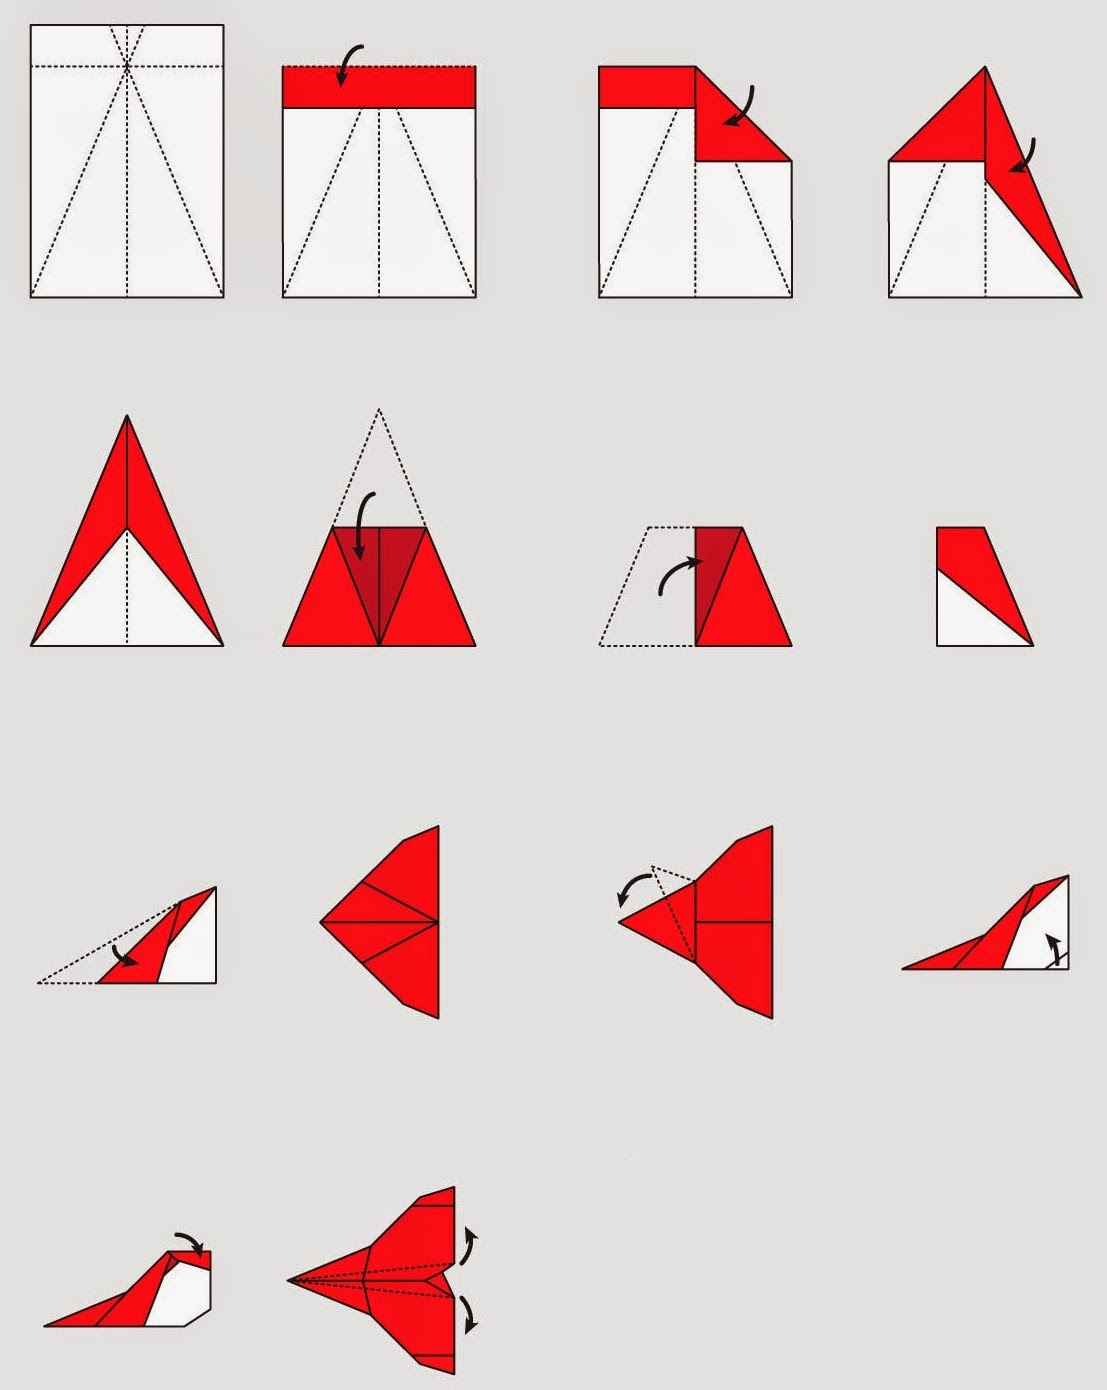 How To Make Origami Planes Step By Step Craft Ideas And Easy Crafts